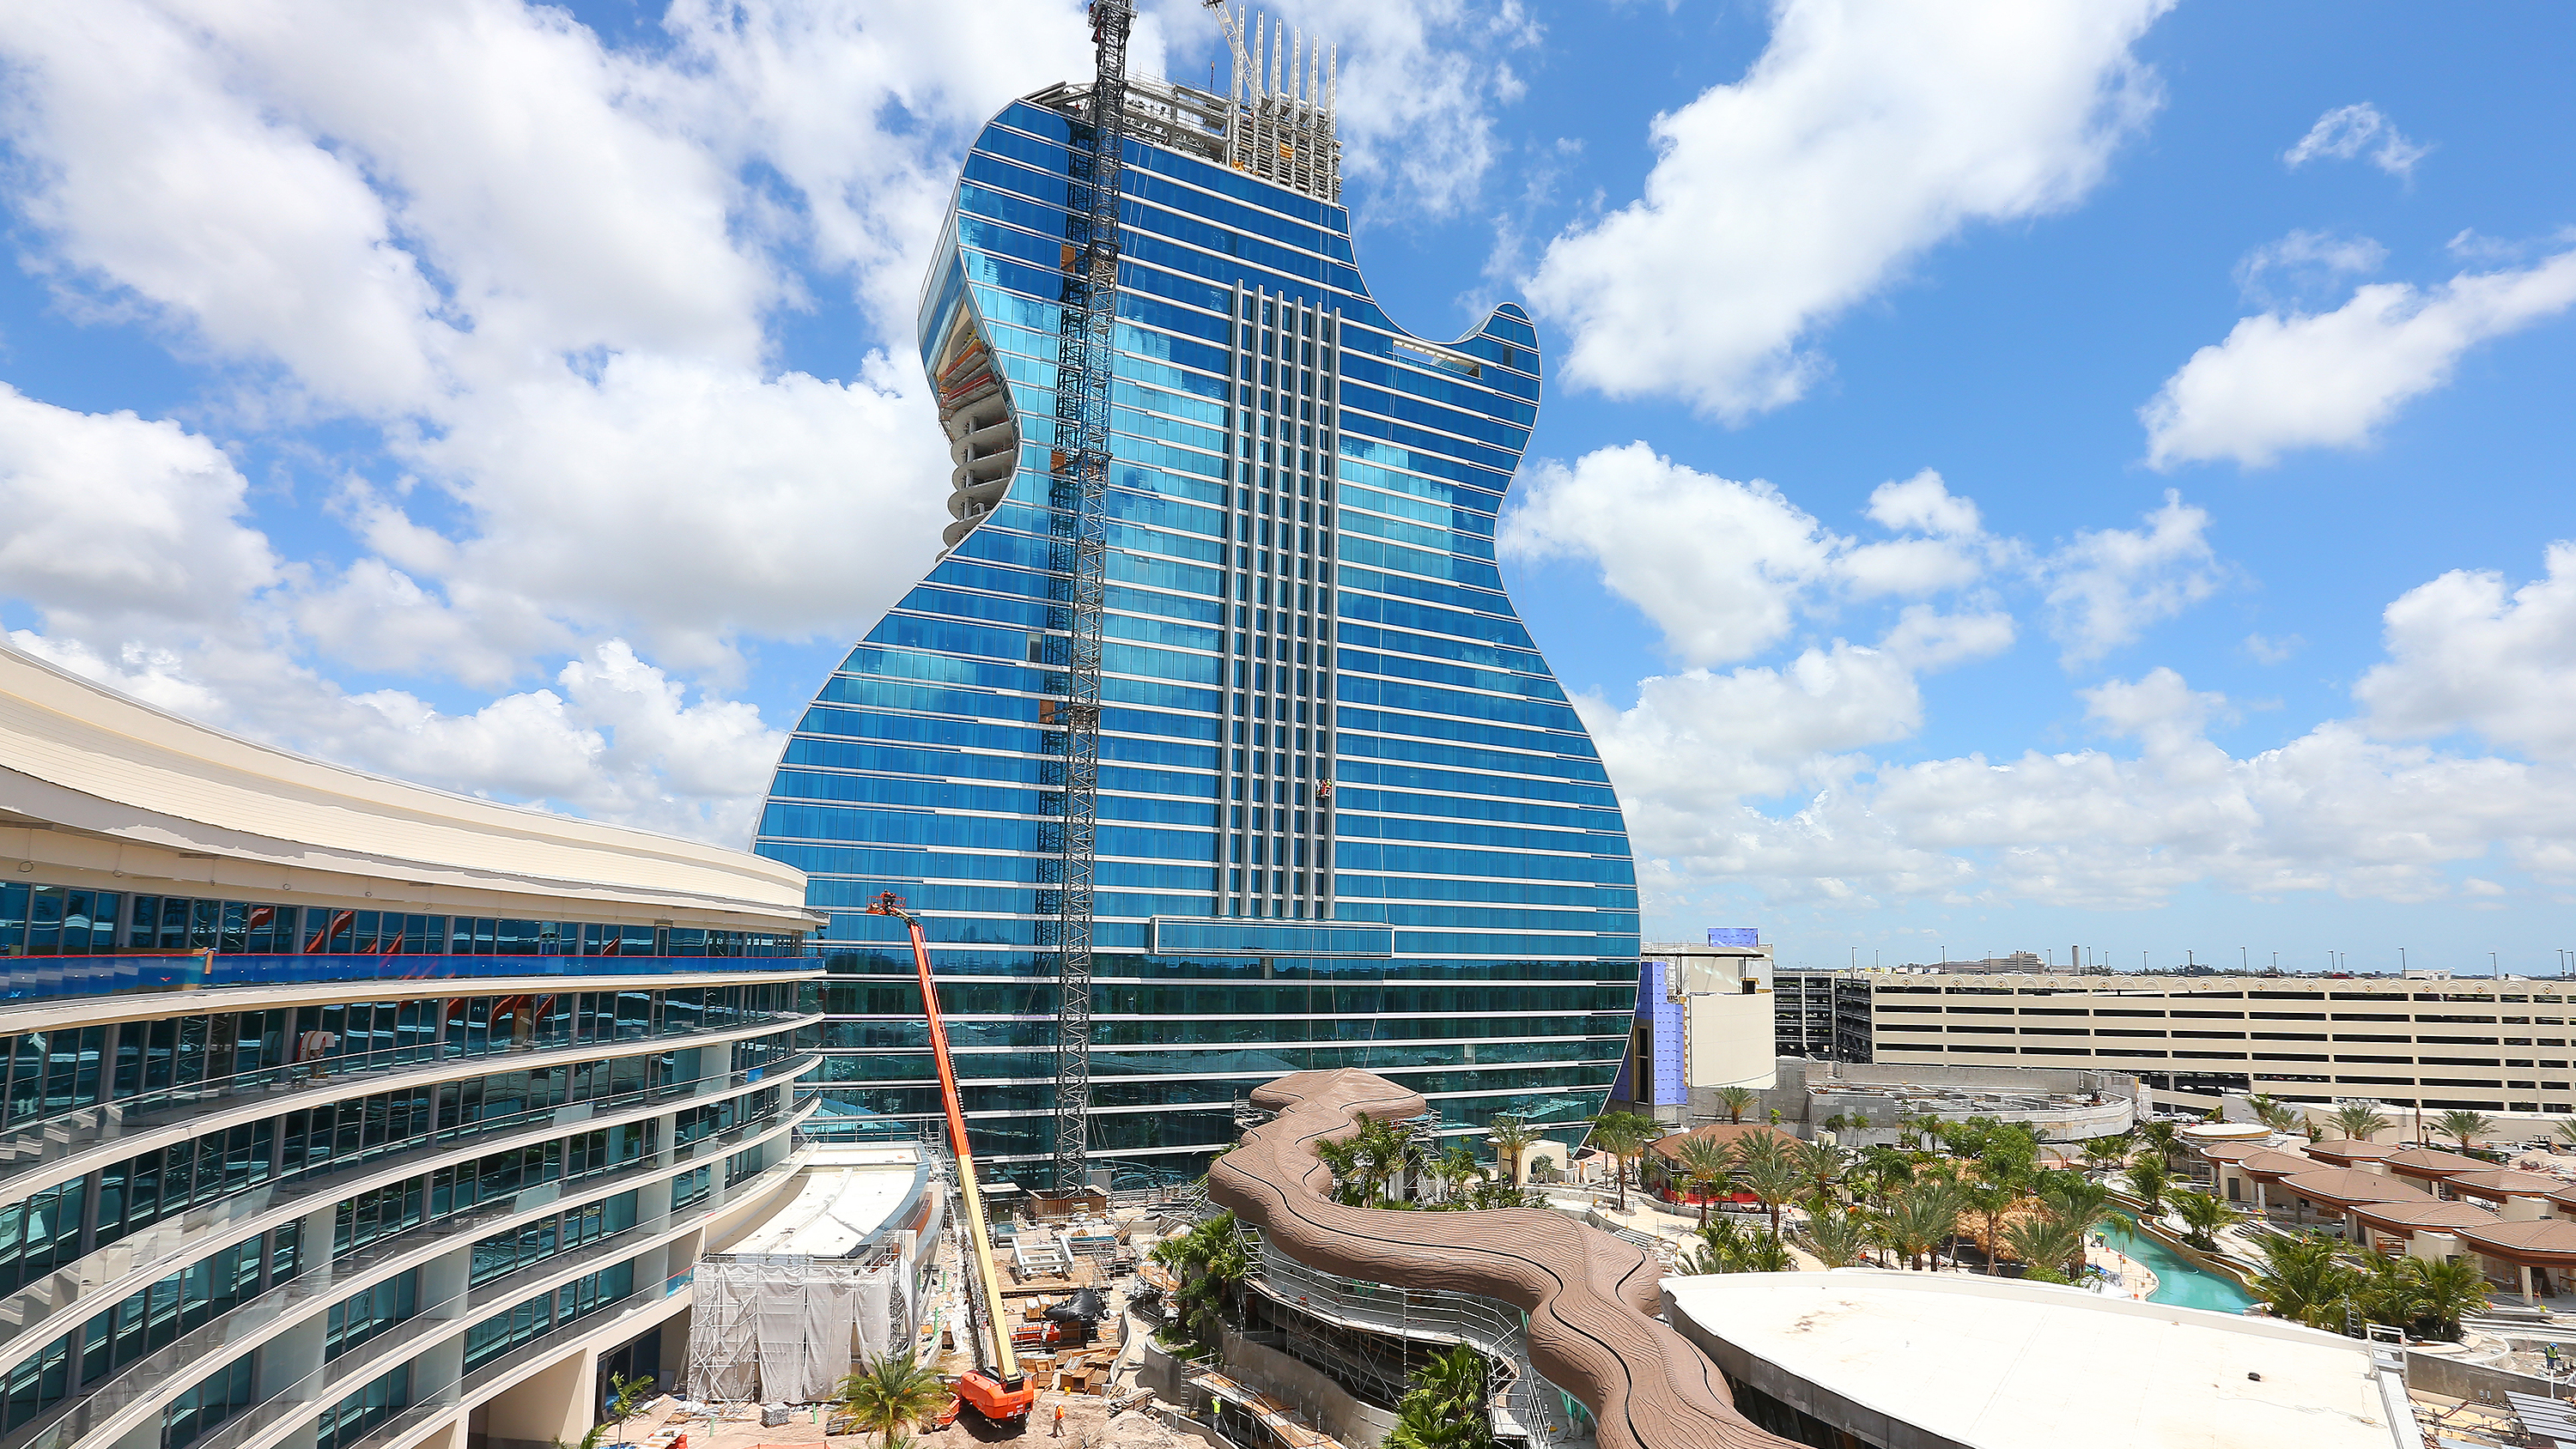 Hard Rock will open a guitar-shaped hotel in Hollywood